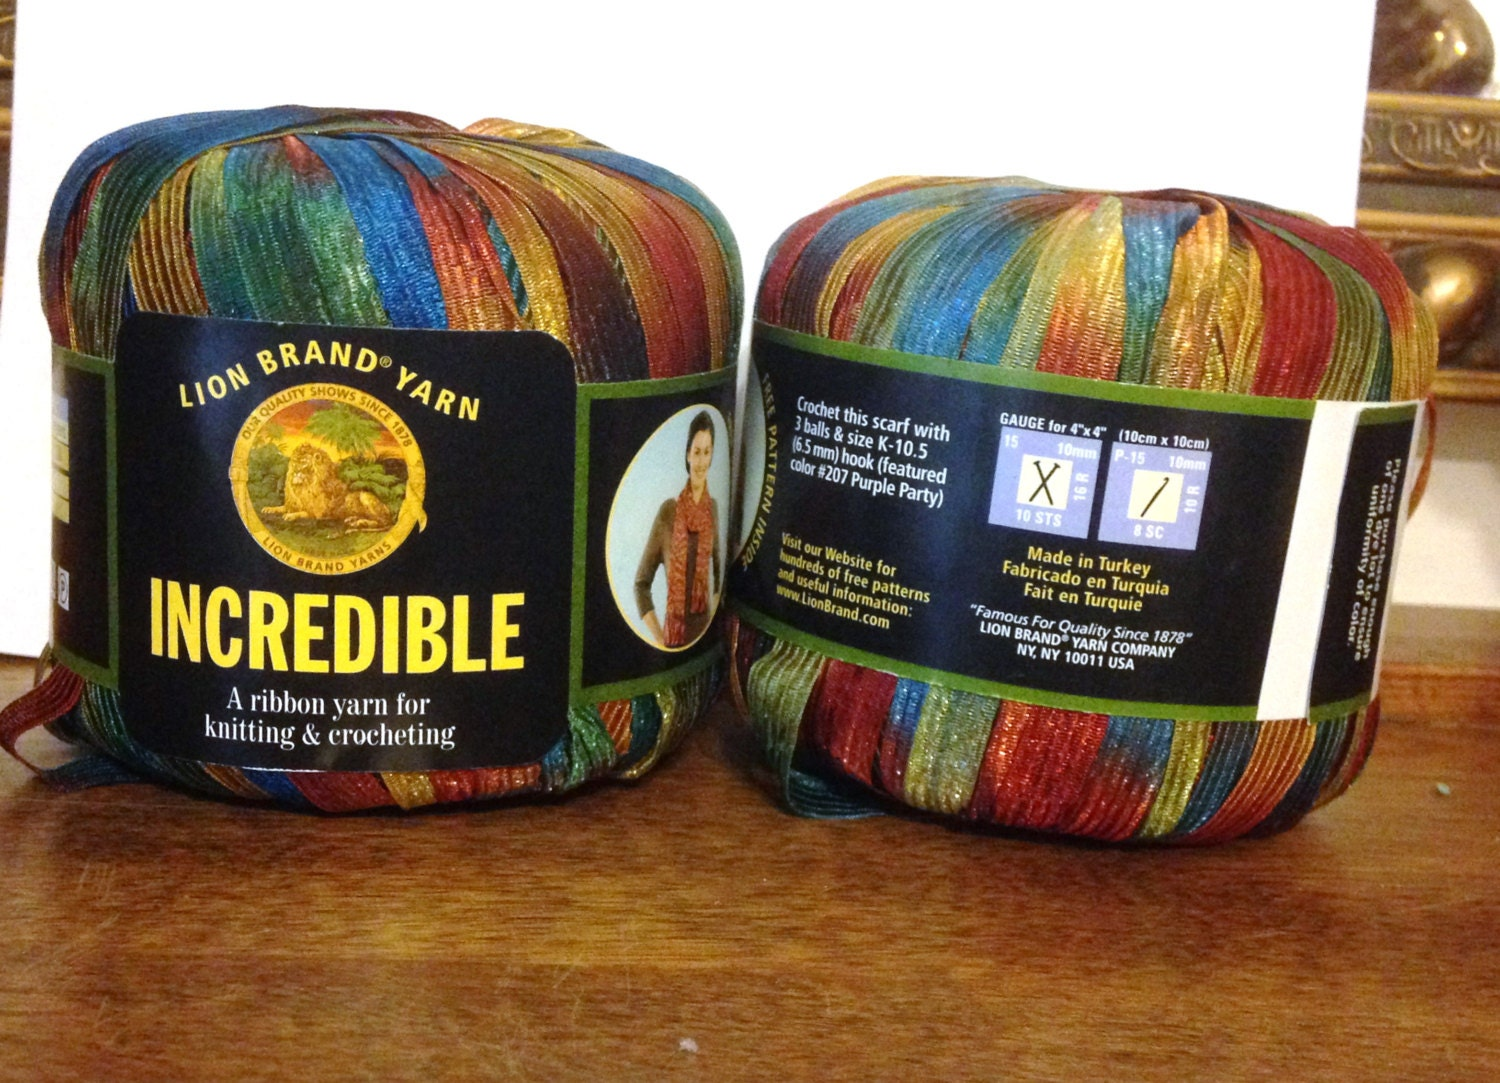 Incredible ribbon yarn copper penny ribbon yarn two skeins - Incredible uses for copper pennies ...